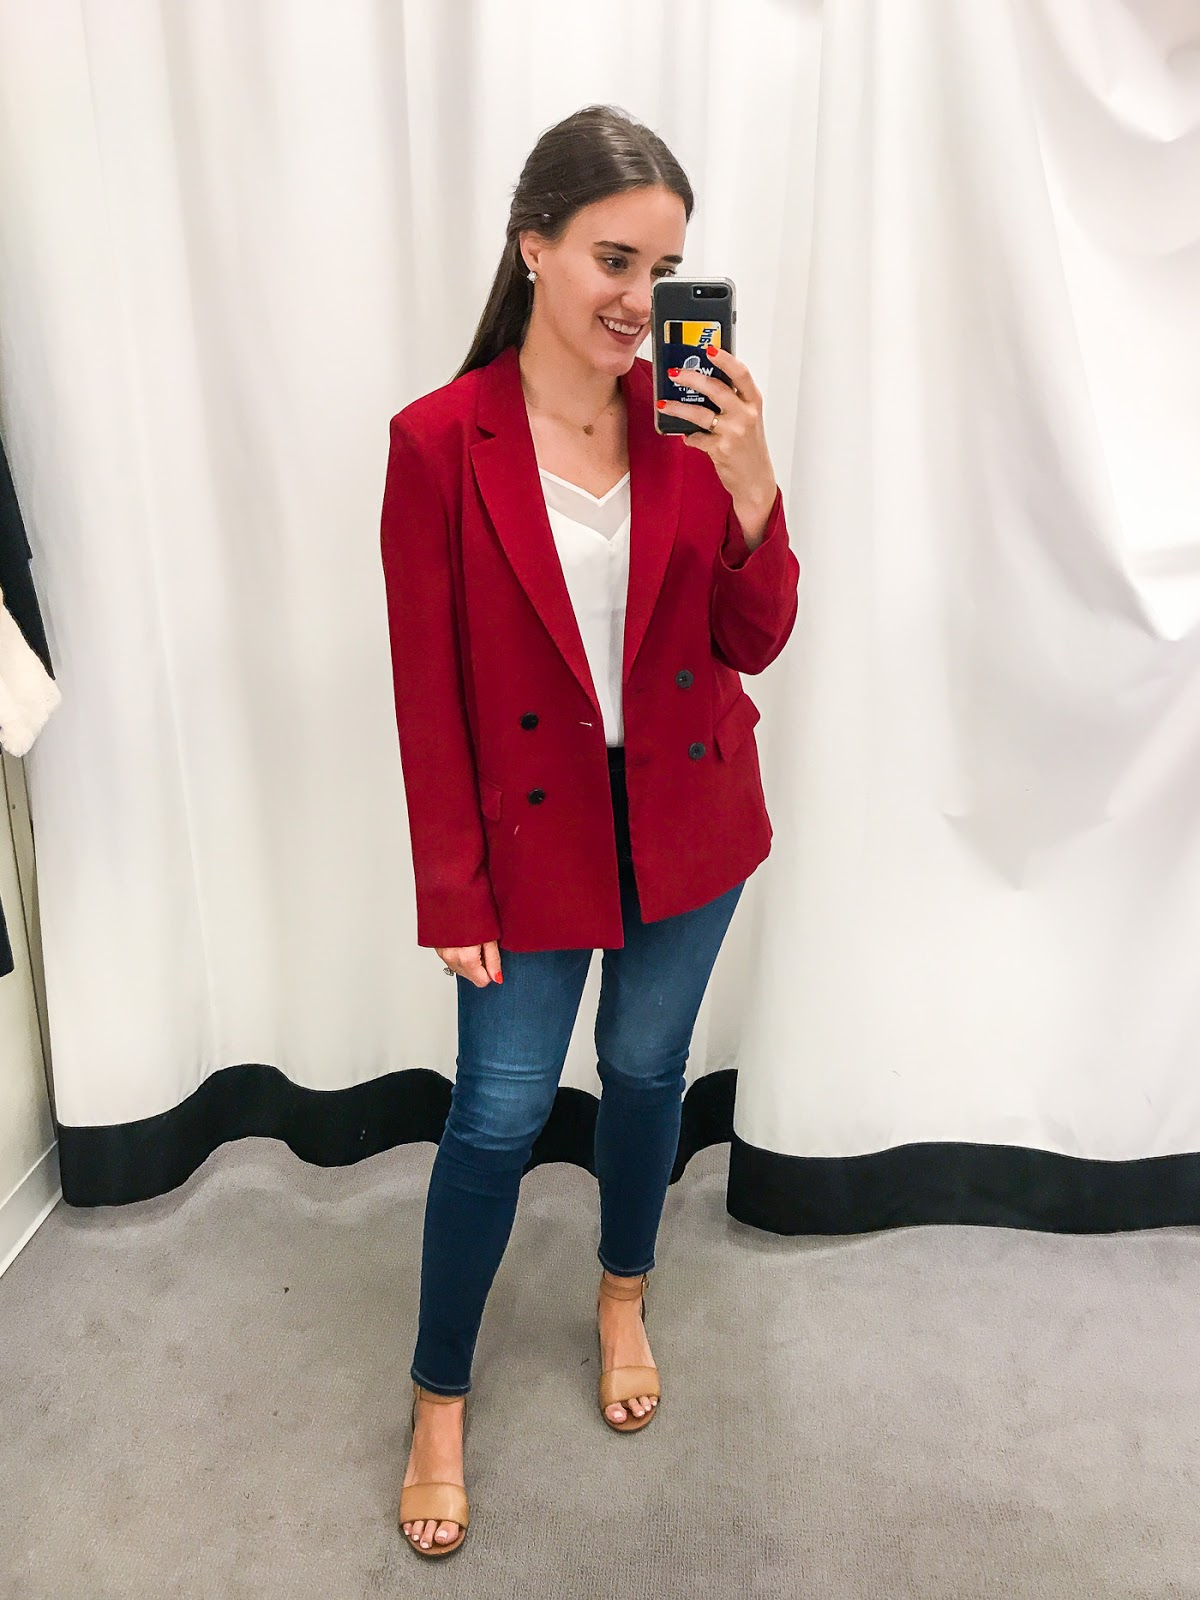 Nordstrom Anniversary Dressing Room Try On featured by popular New York fashion blogger, Covering the Bases